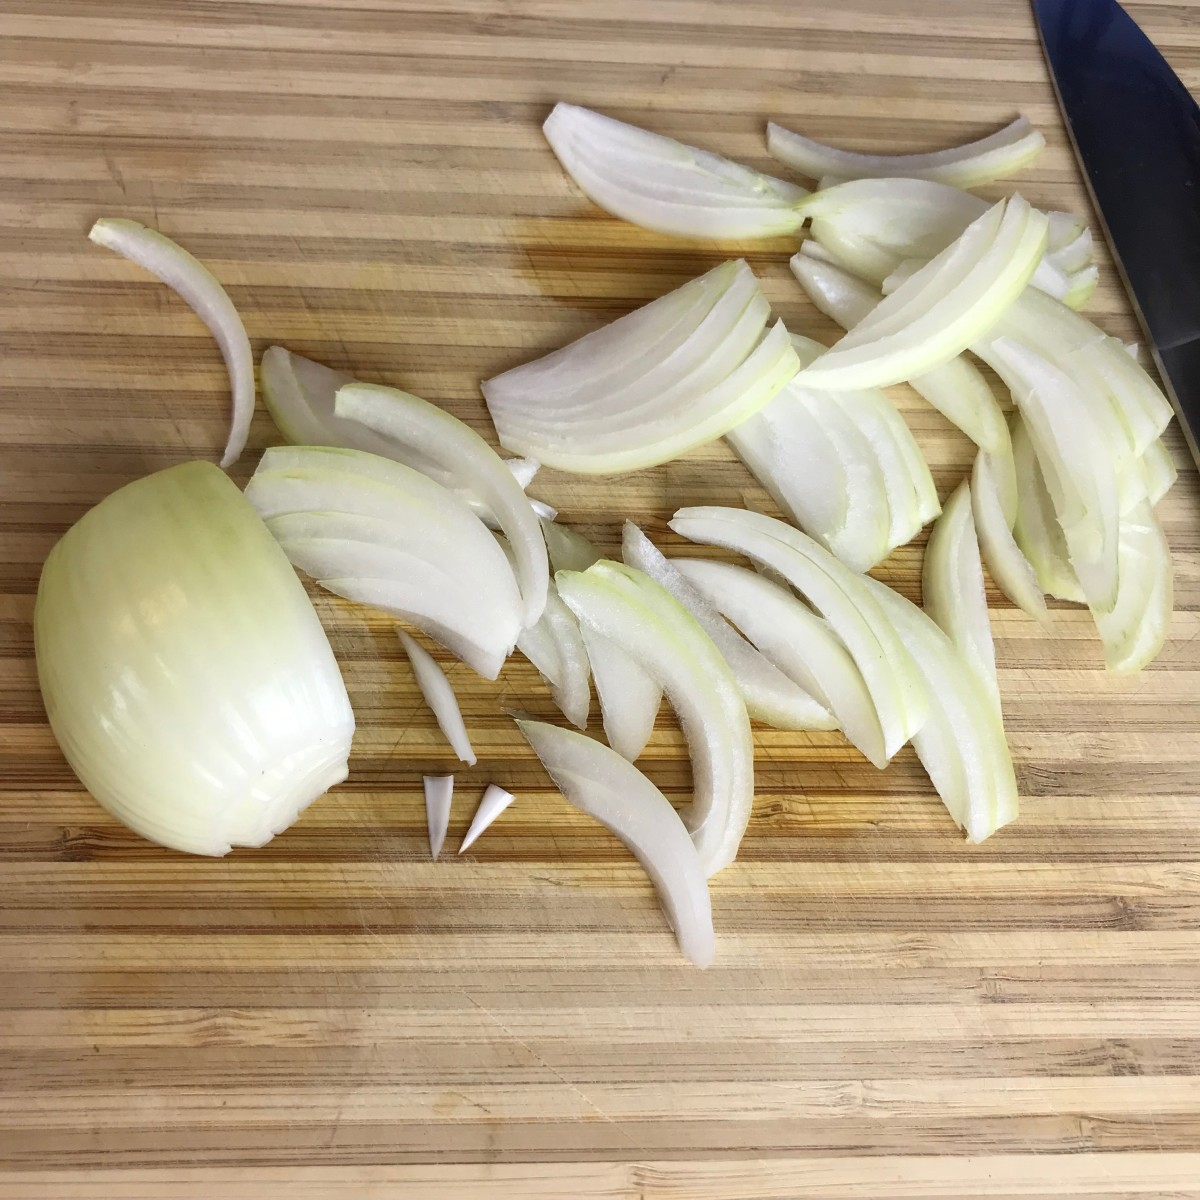 Slice the onions about a quarter inch thick. Any thinner and the juices will cook out too quickly, causing the onions to burn. Any thicker and they won't caramelize properly. When cutting the onions, go against the grain just like in the photo.